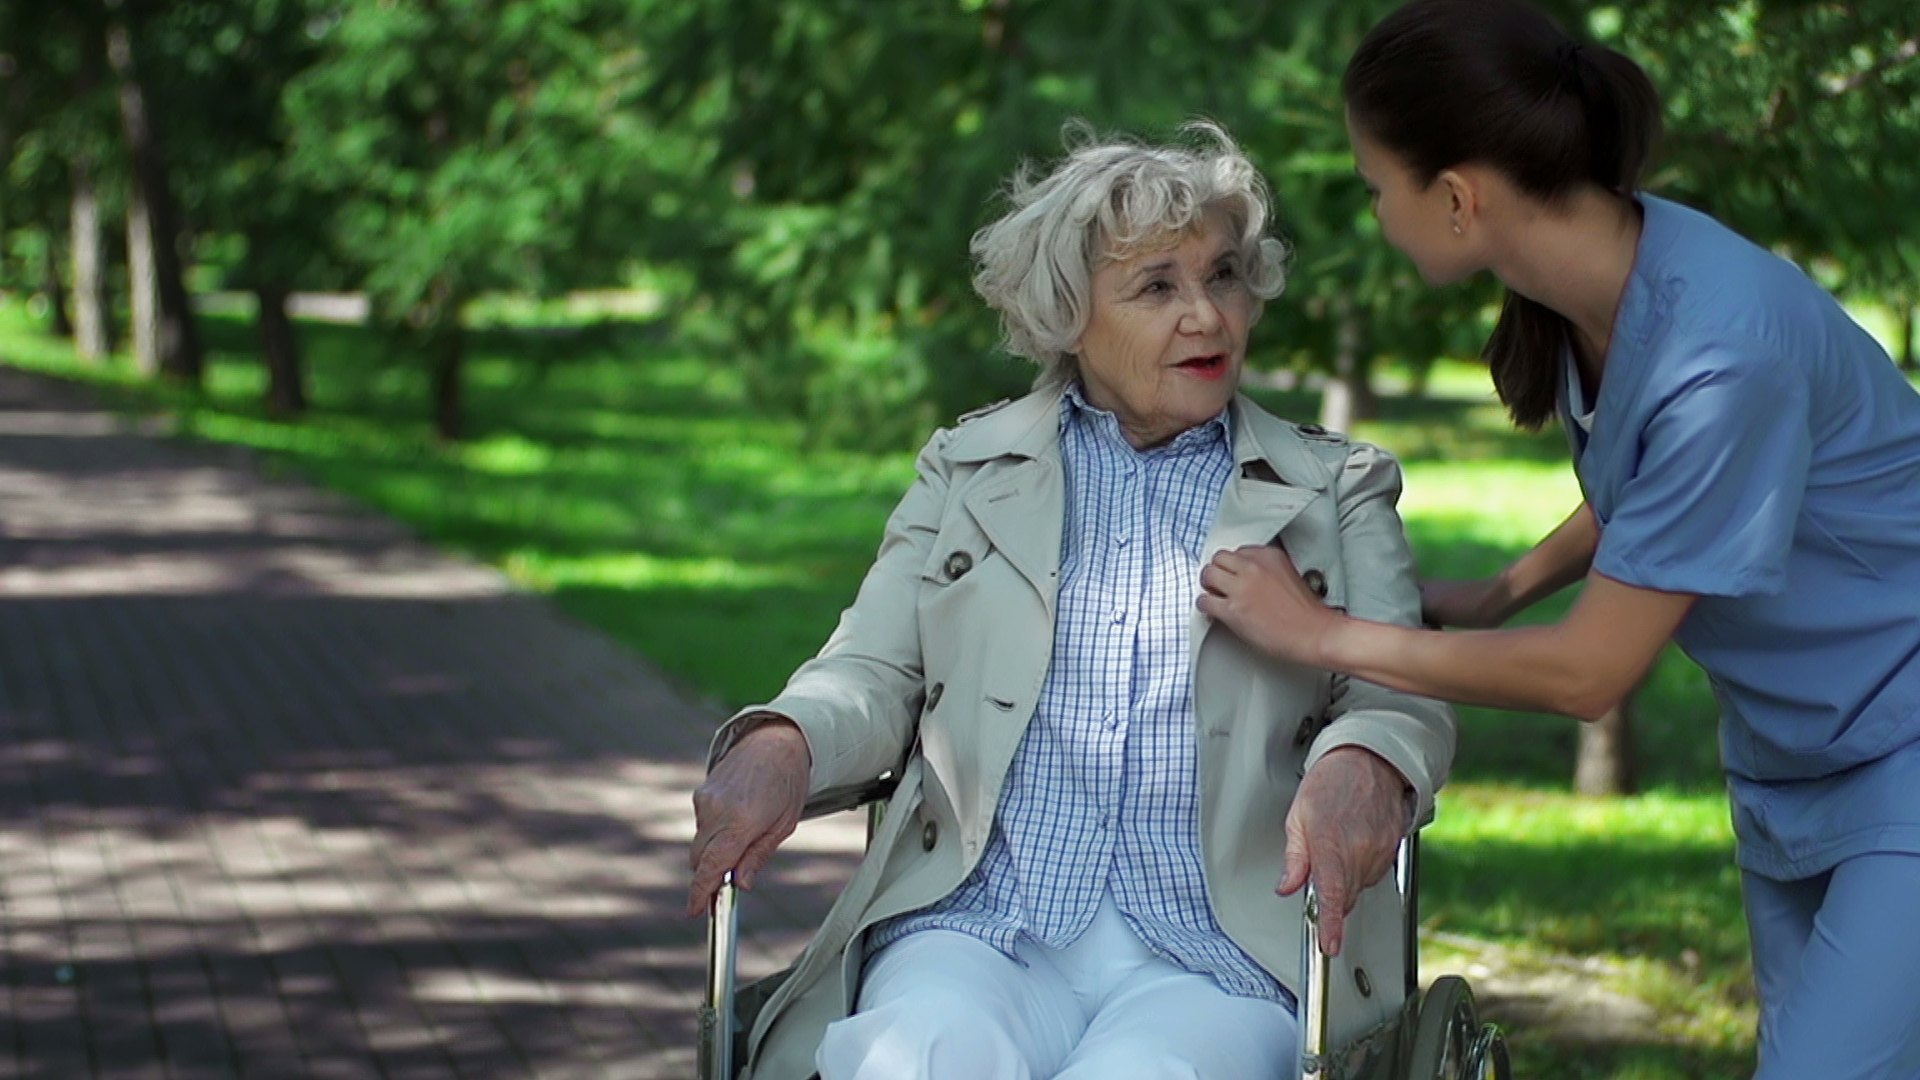 Home Care Assistance for Elderly Family Members